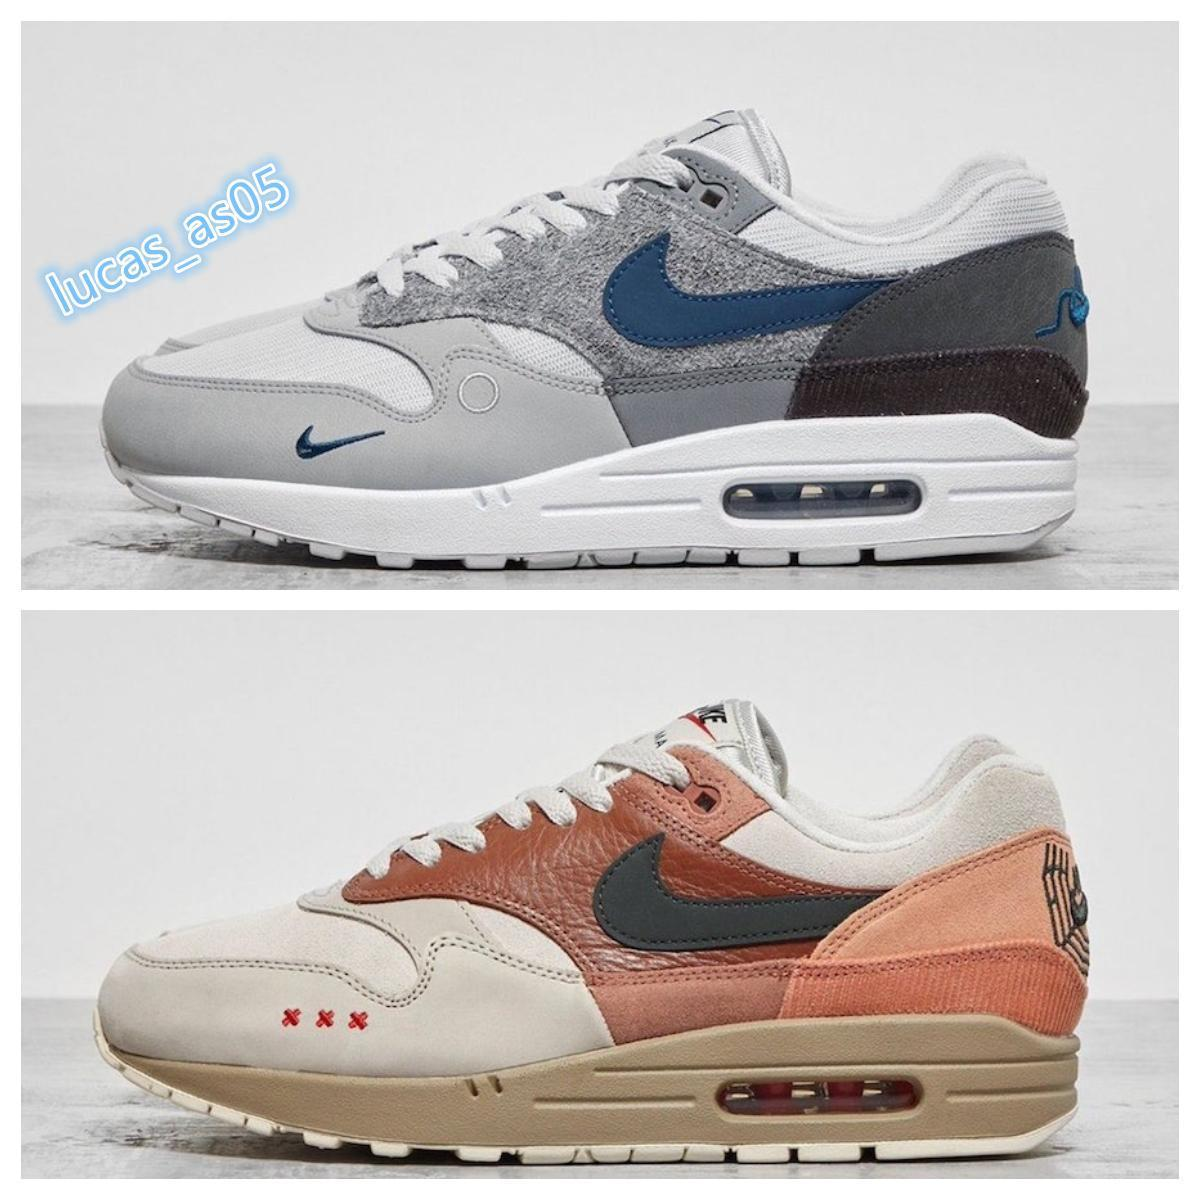 2020 NIKE AIR MAX 90 Atmos 1s 90s Shoes Trainers Atmos Animal Pack 3.0 Elephant Bred Print airmax 90 Reverse Duck Nike Air Max 1 City Pack Amsterdam airmax 1 London